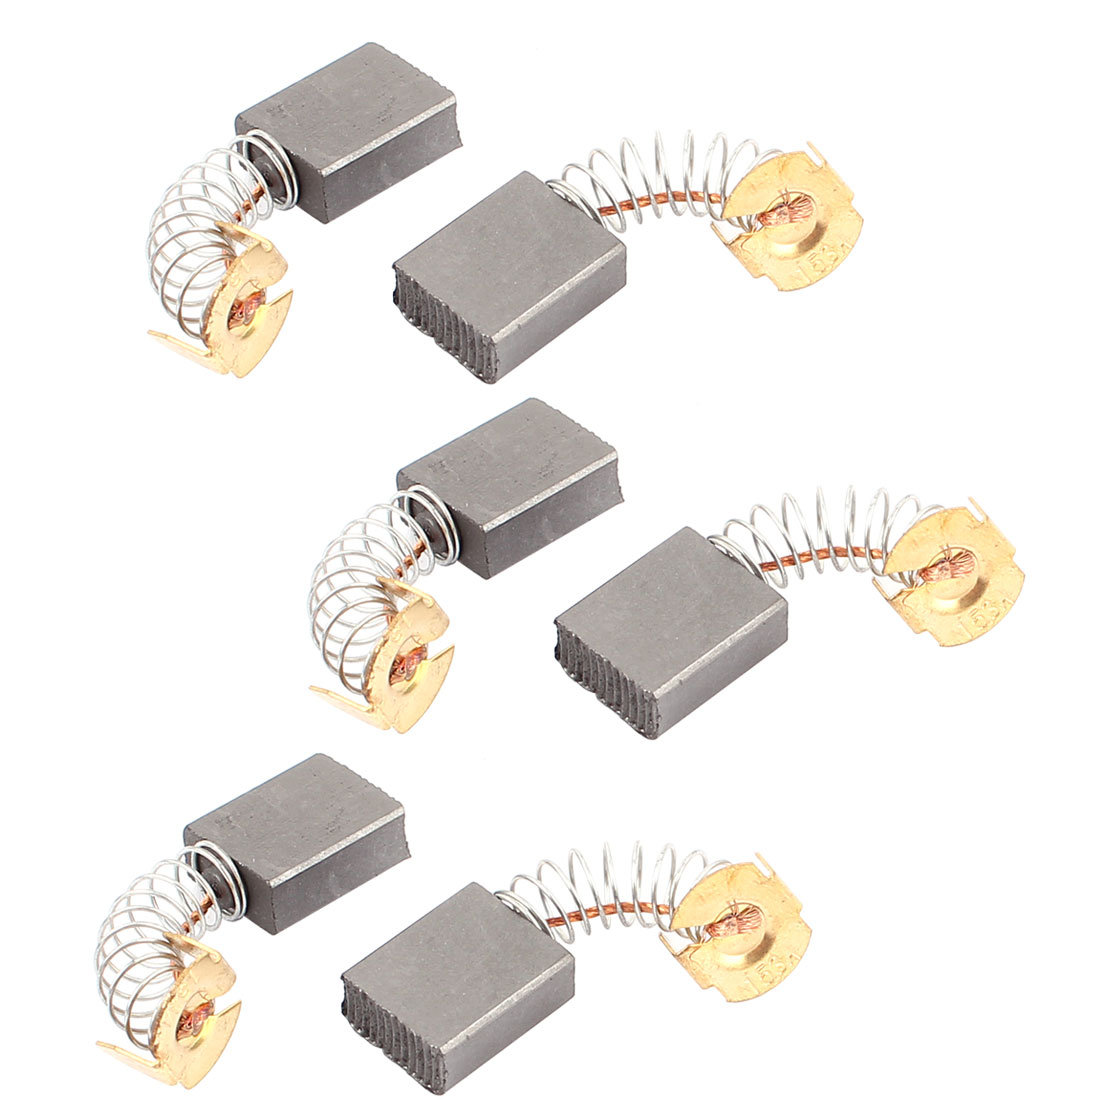 6 Pcs Replacement Electric Motor Carbon Brushes 17mm x 13mm x 6mm for Motors